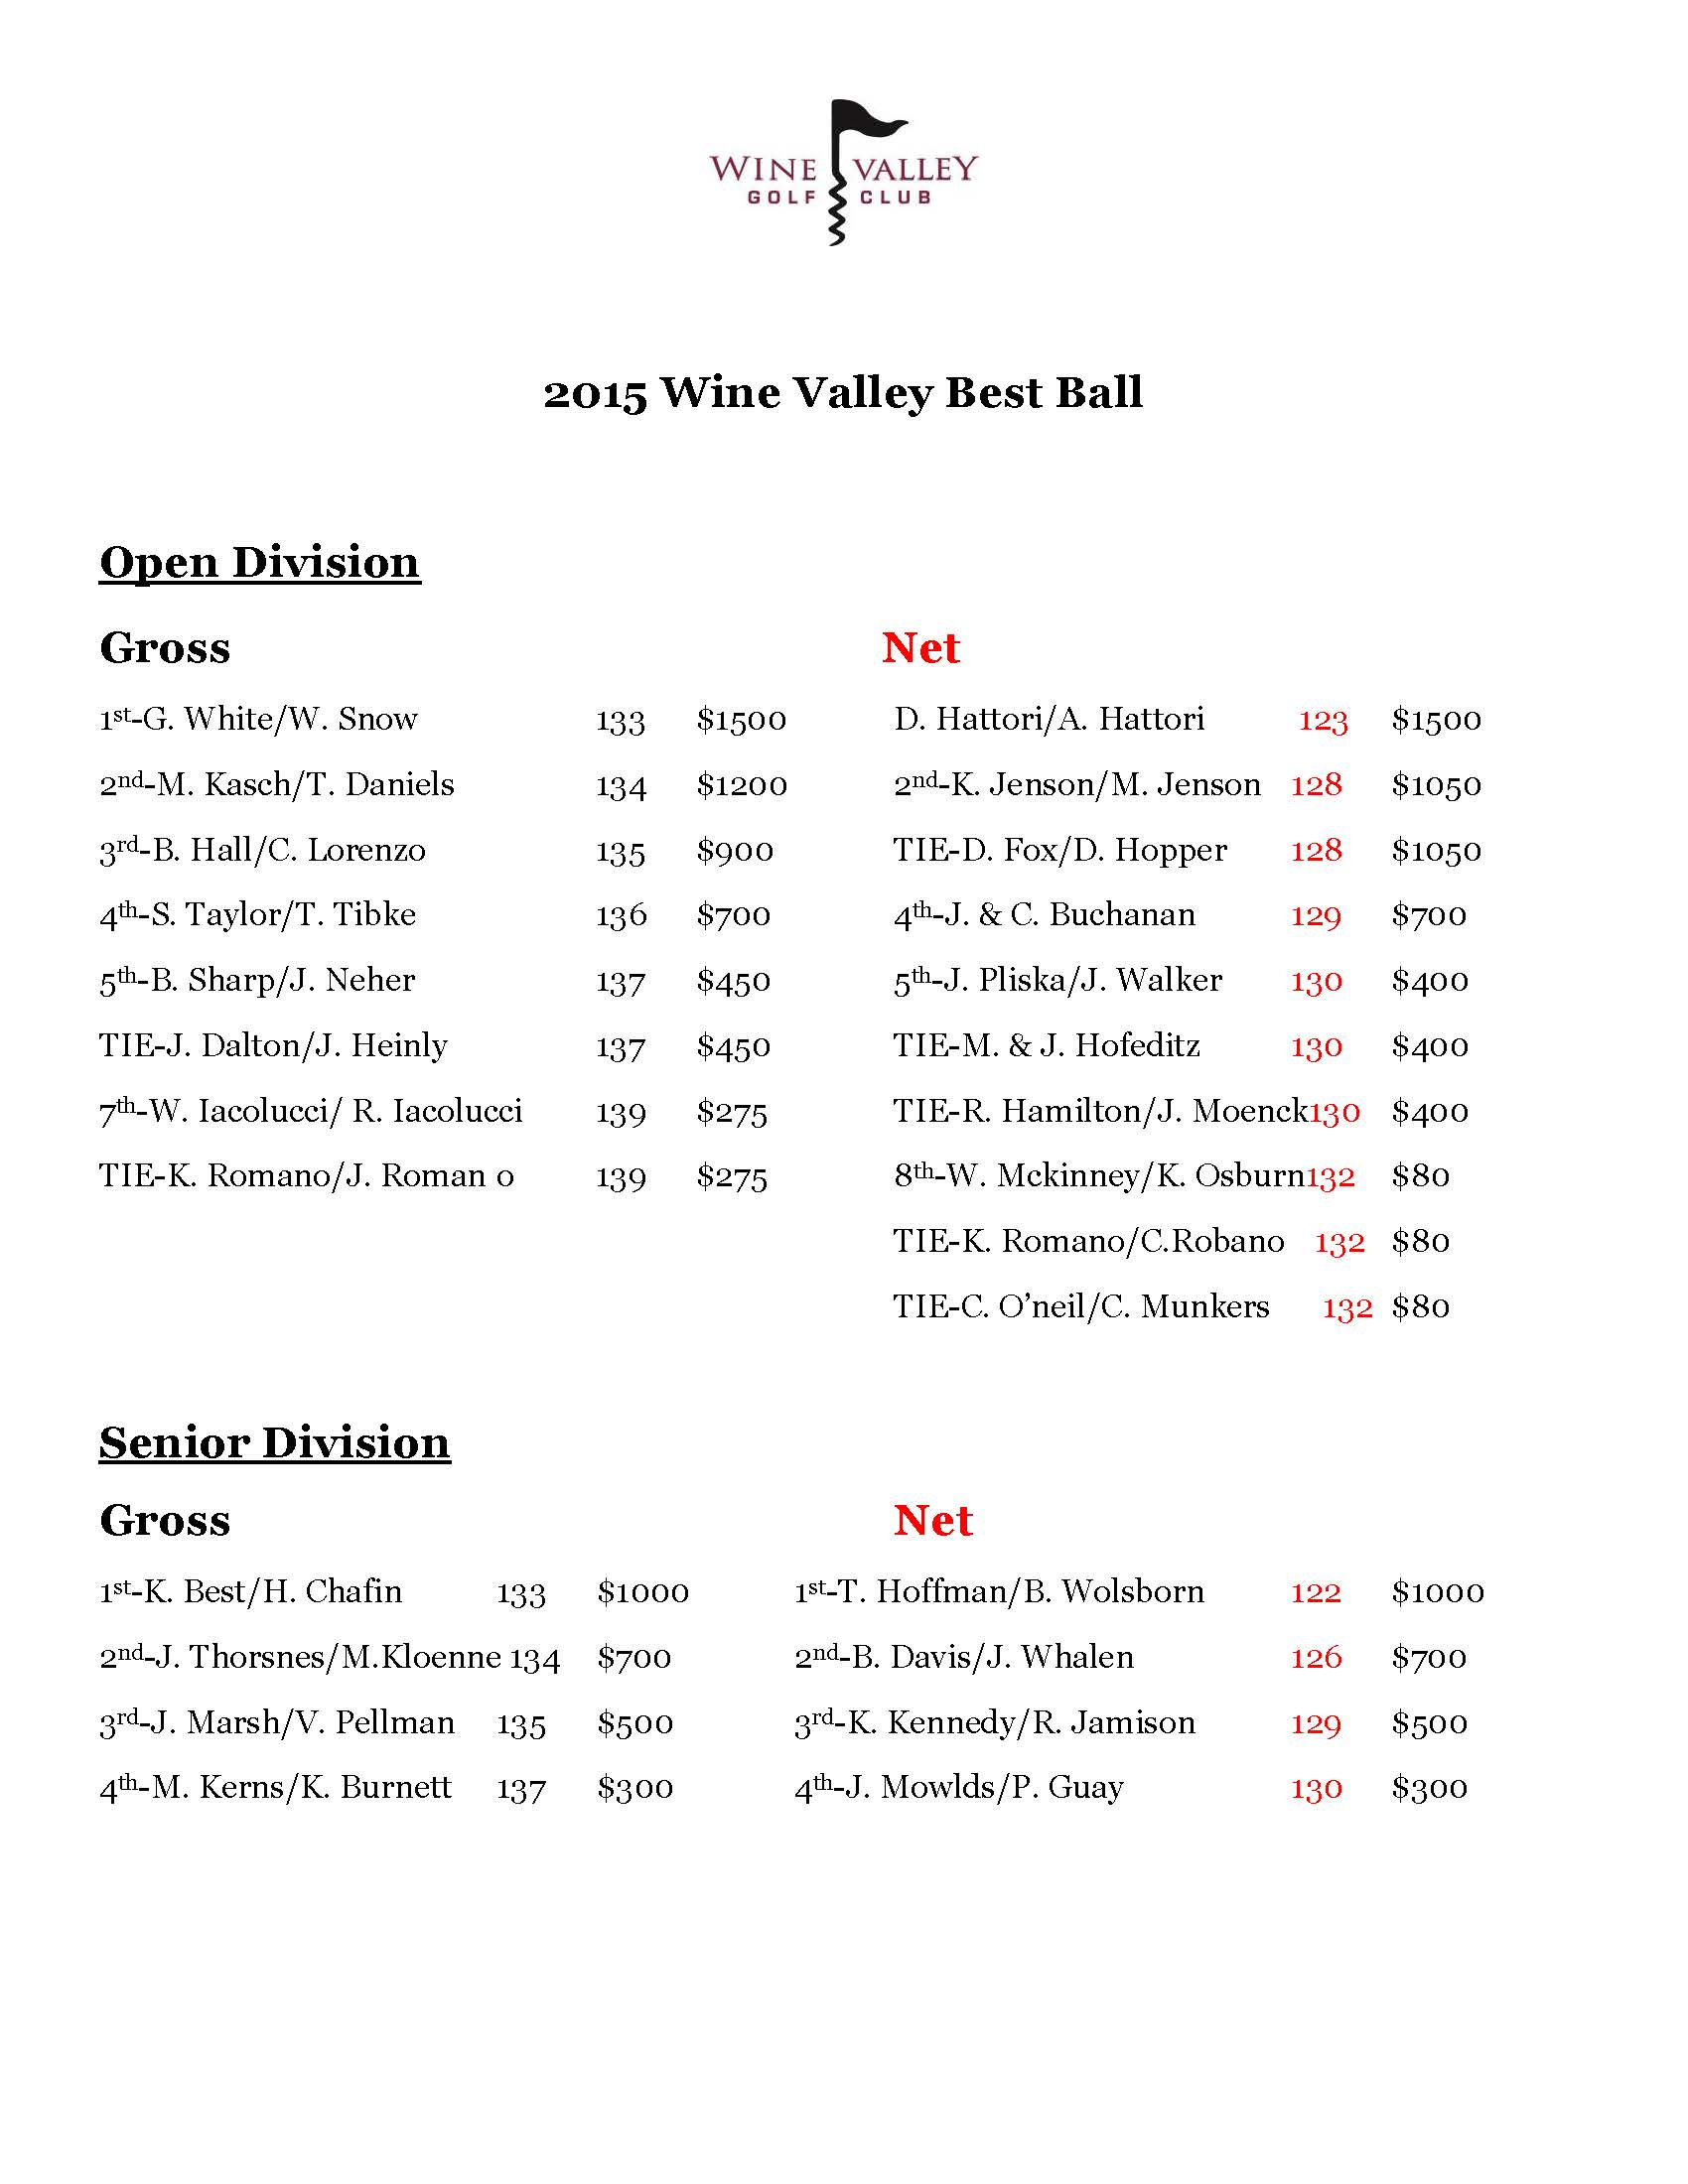 2015 Wine Valley Best Ball Results